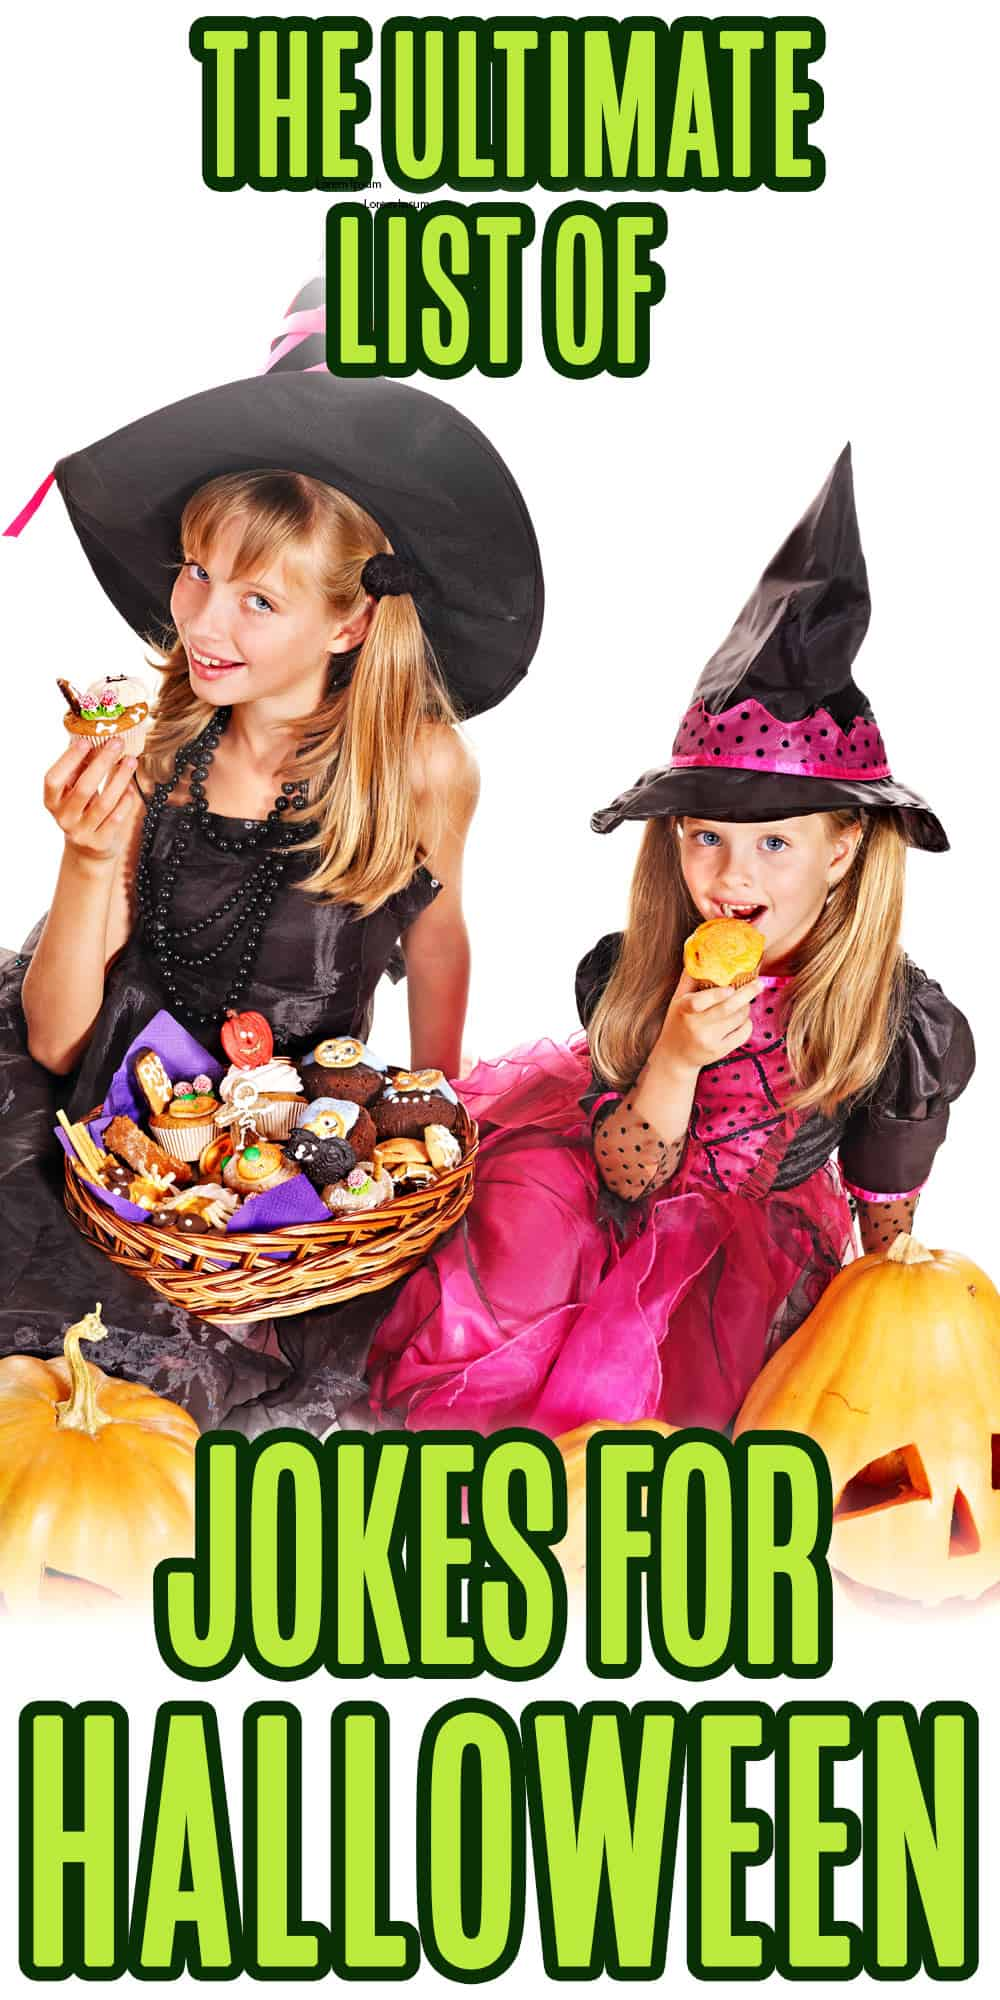 Funny Halloween Jokes kids love - kids in costume with halloween candy